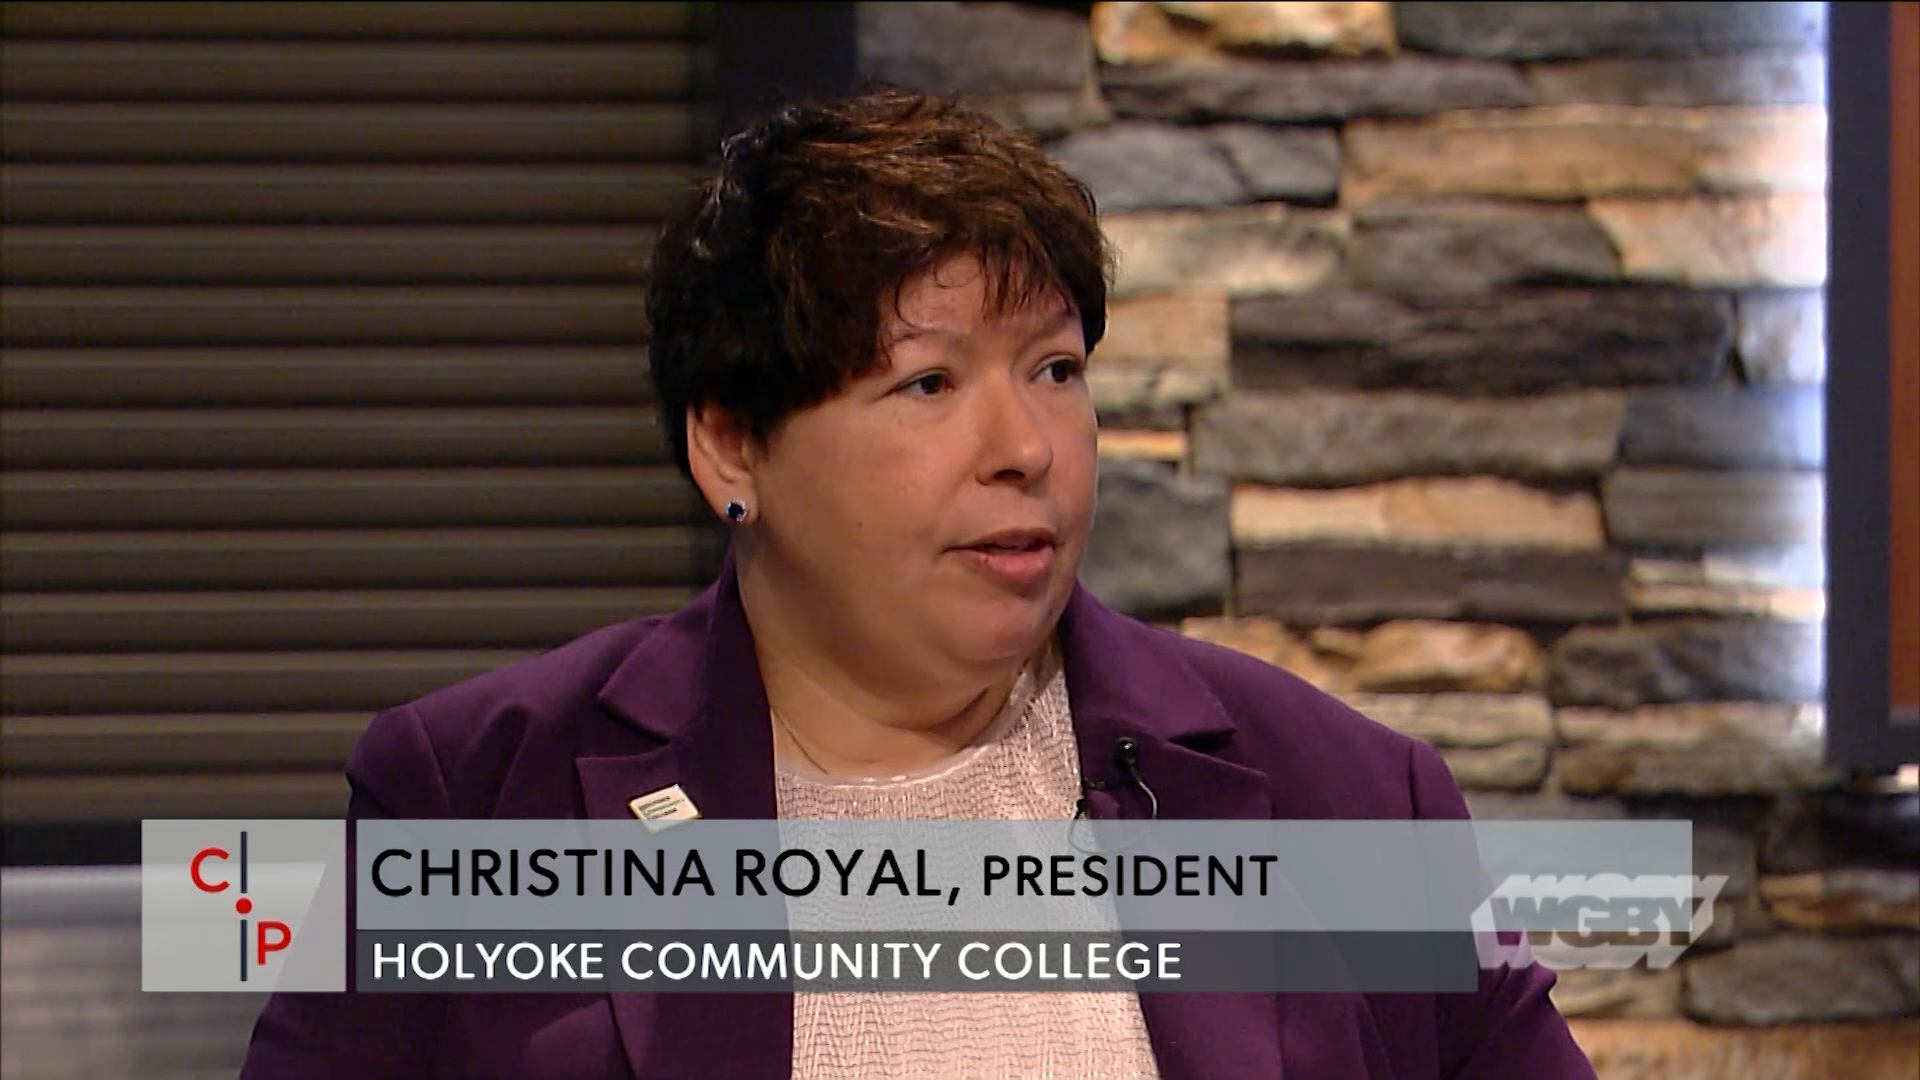 Holyoke Community College's Christina Royal & STCC's John Cook discuss the shortcomings and potentials of the Mass. Community College Funding Formula.